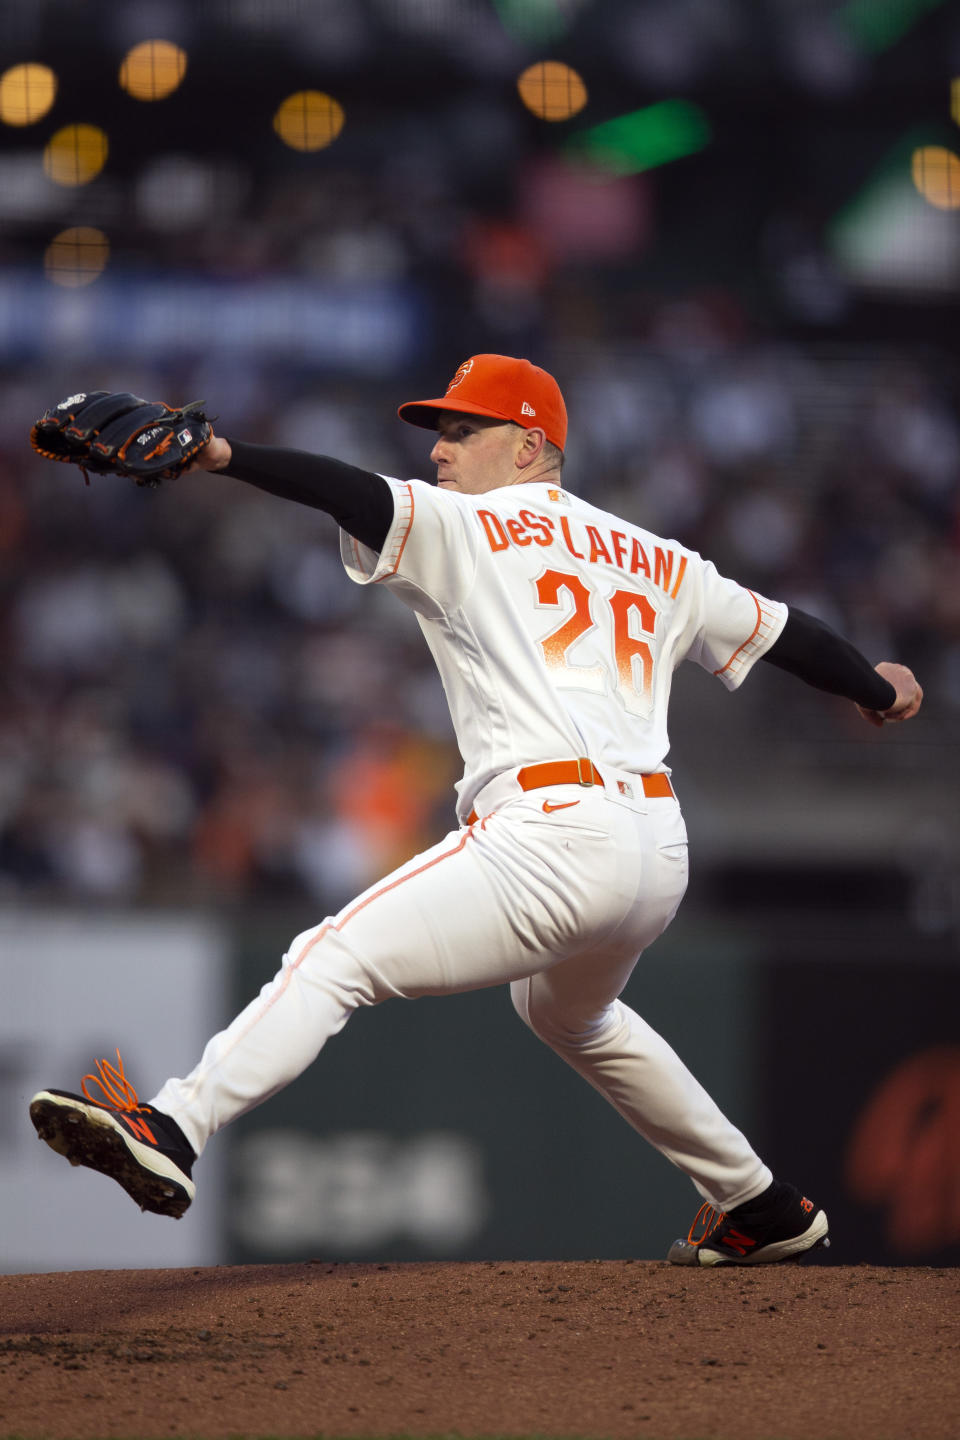 San Francisco Giants starting pitcher Anthony DeSclafani delivers against the San Diego Padres during the second inning of a baseball game, Tuesday, Sept. 14, 2021, in San Francisco. (AP Photo/D. Ross Cameron)